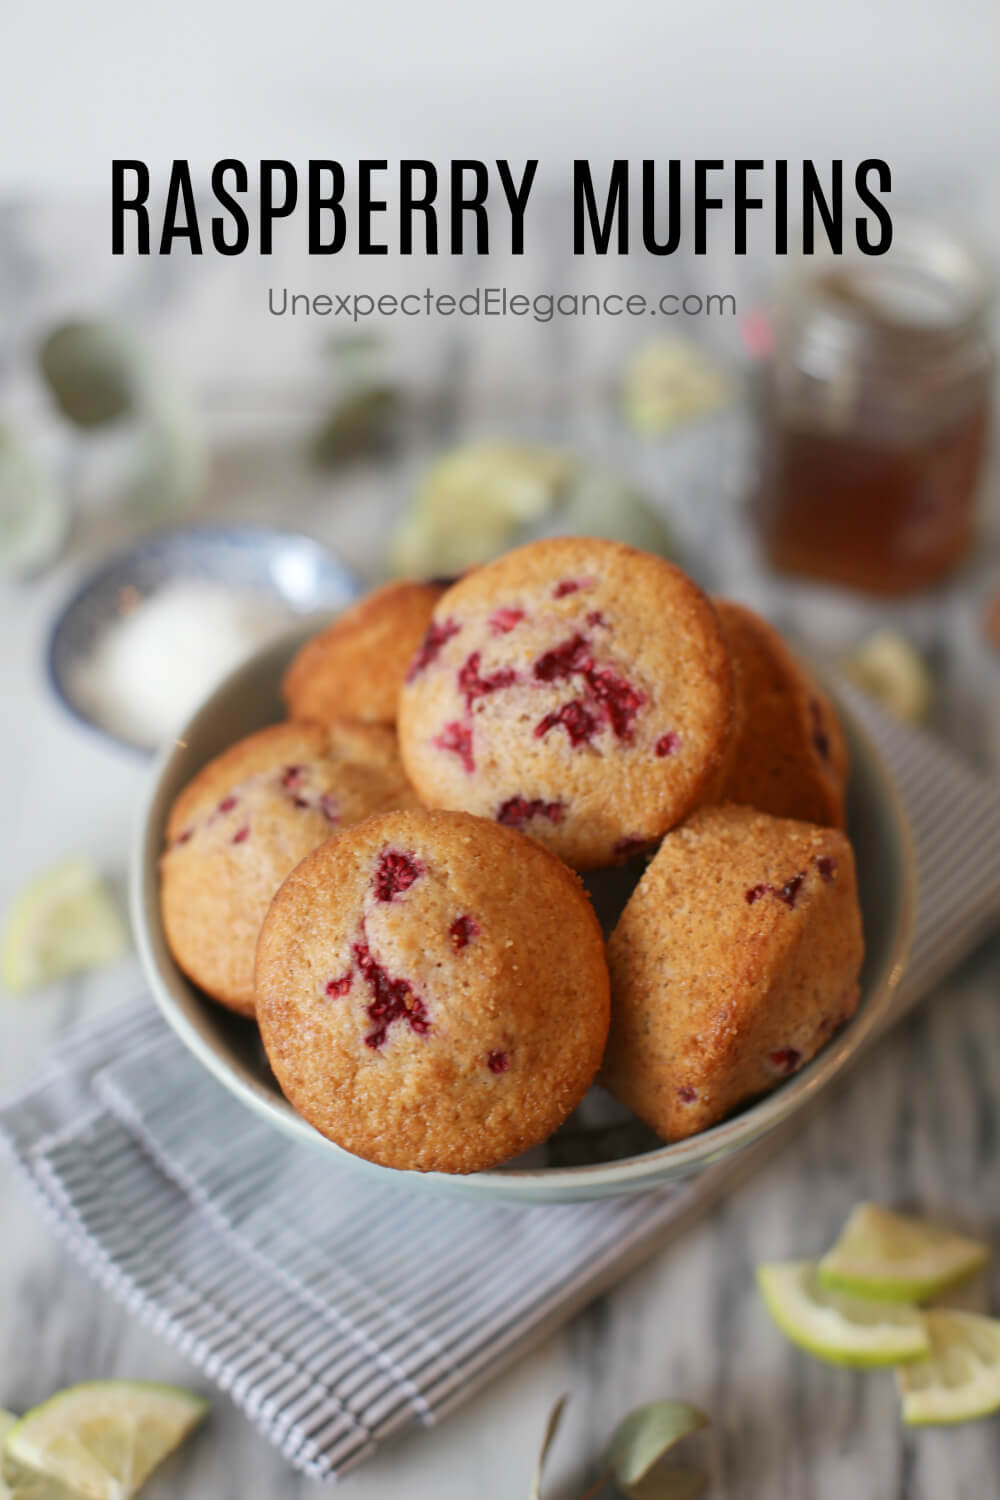 If you love a good baked treat, then give this Raspberry muffin recipe a try! The tart flavor of the raspberries is amazing and you can swap out the berries for a completely different taste.